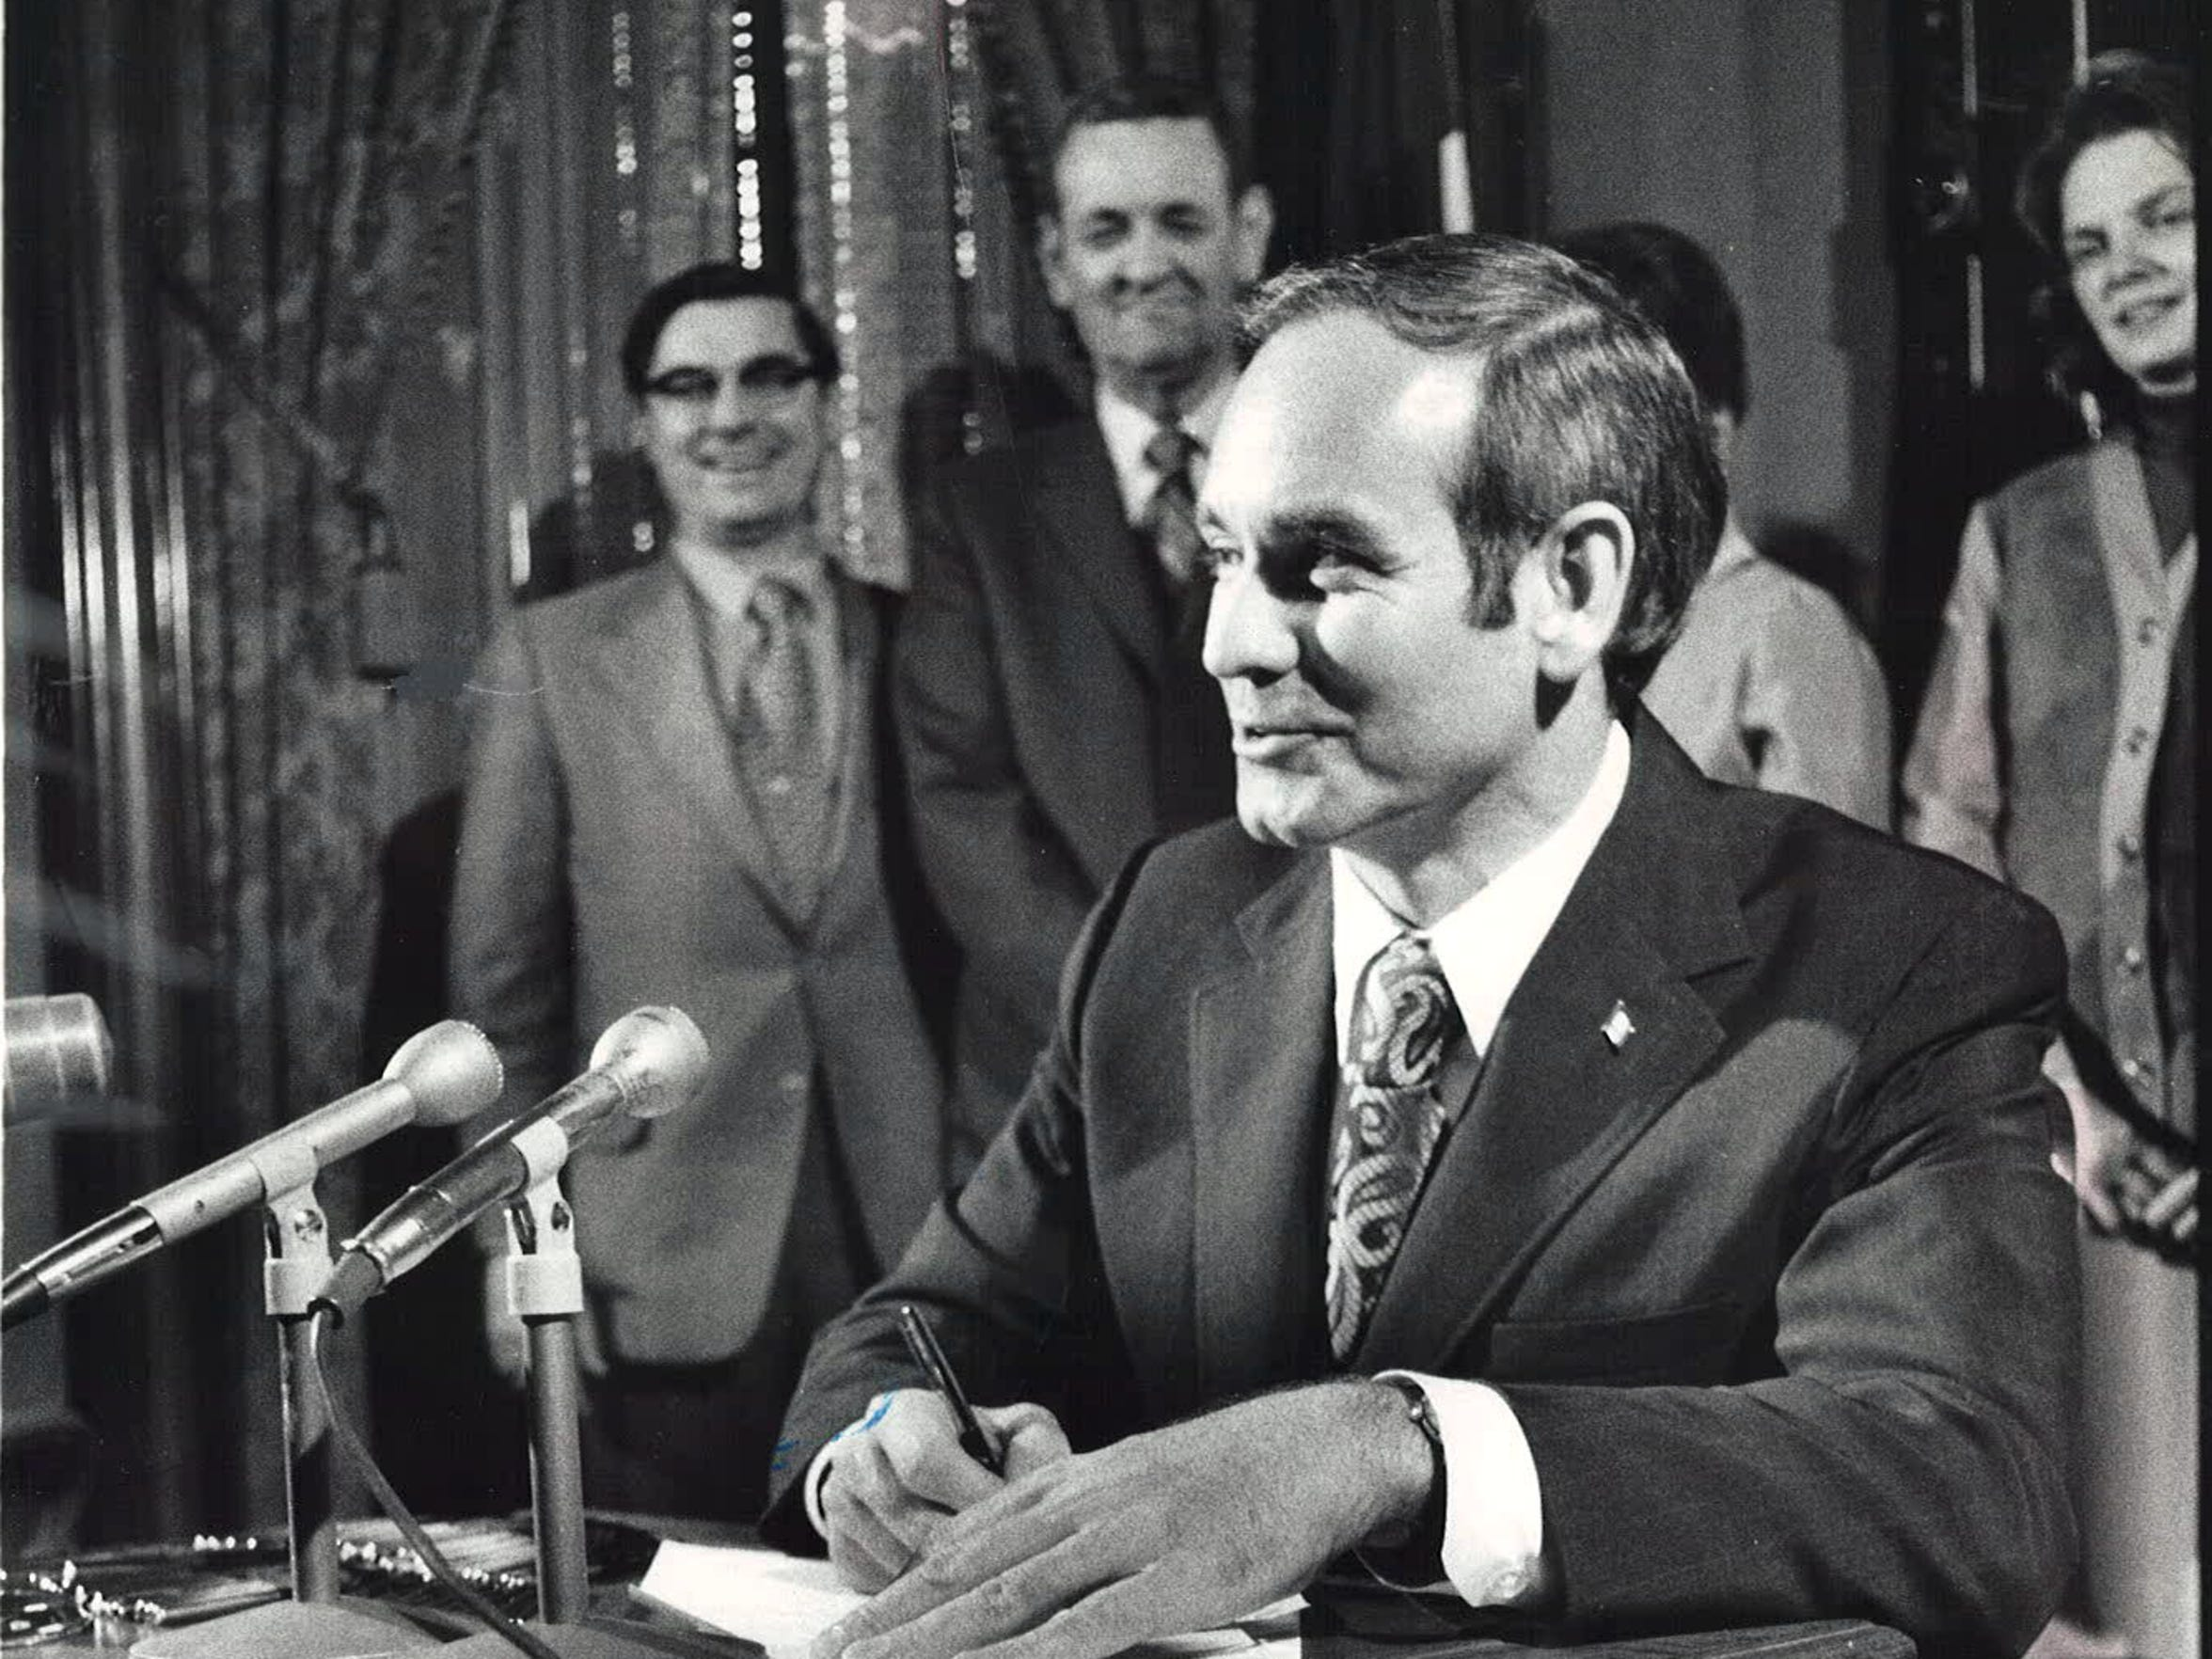 From 1972: Iowa Gov. Robert Ray signs legislation establishing